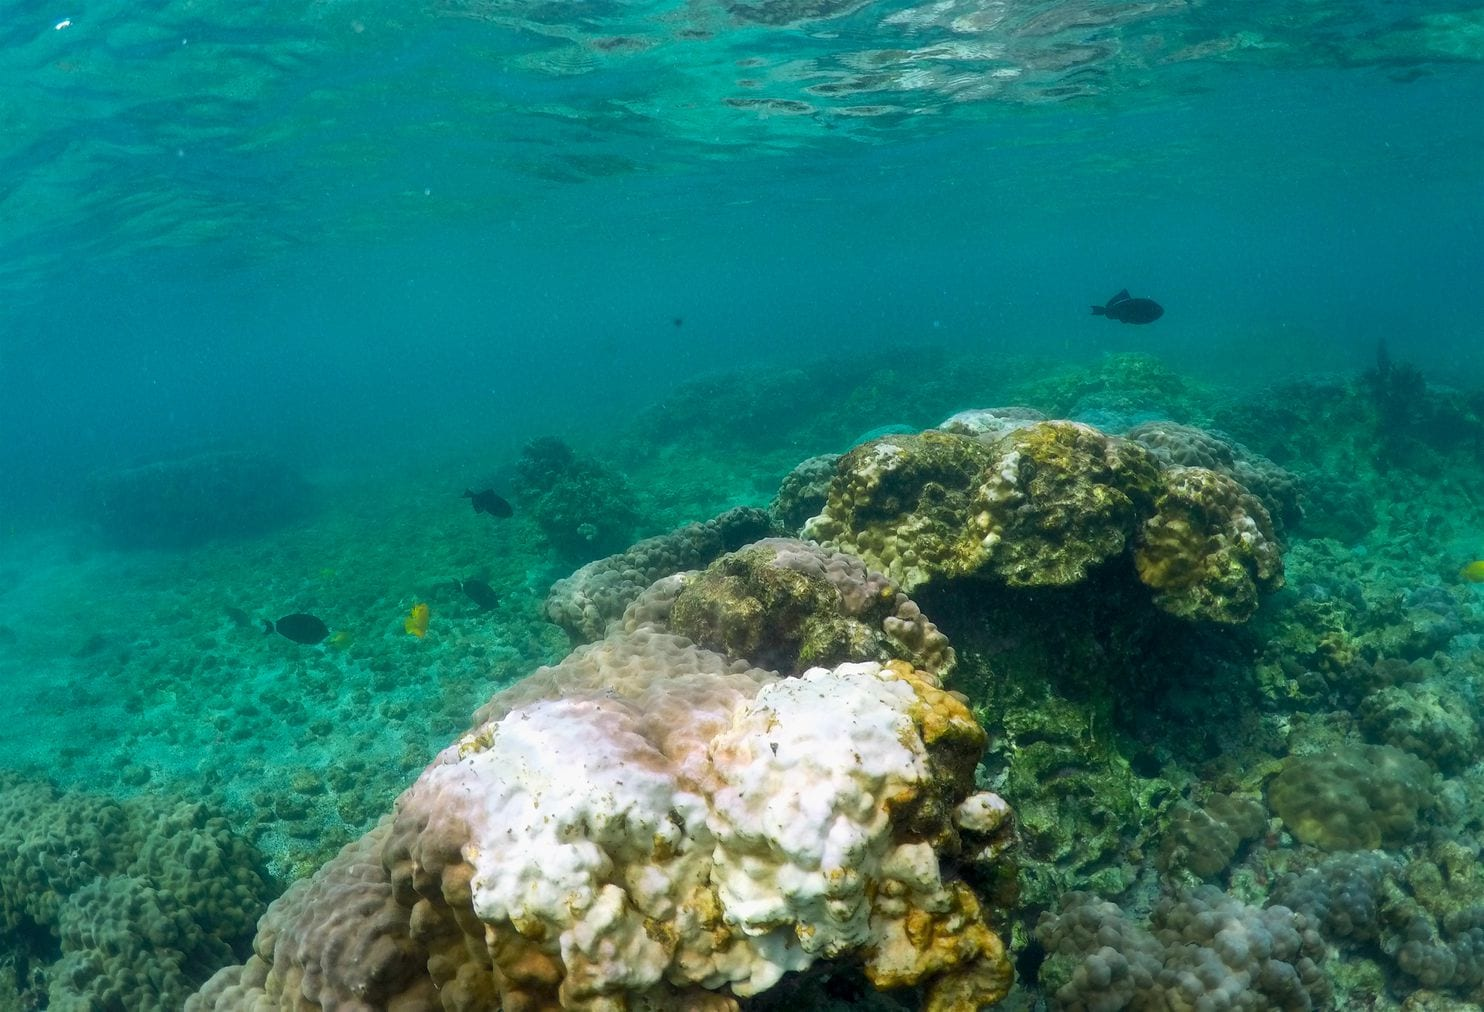 Hawaii coral show signs of stress amid record-setting heat